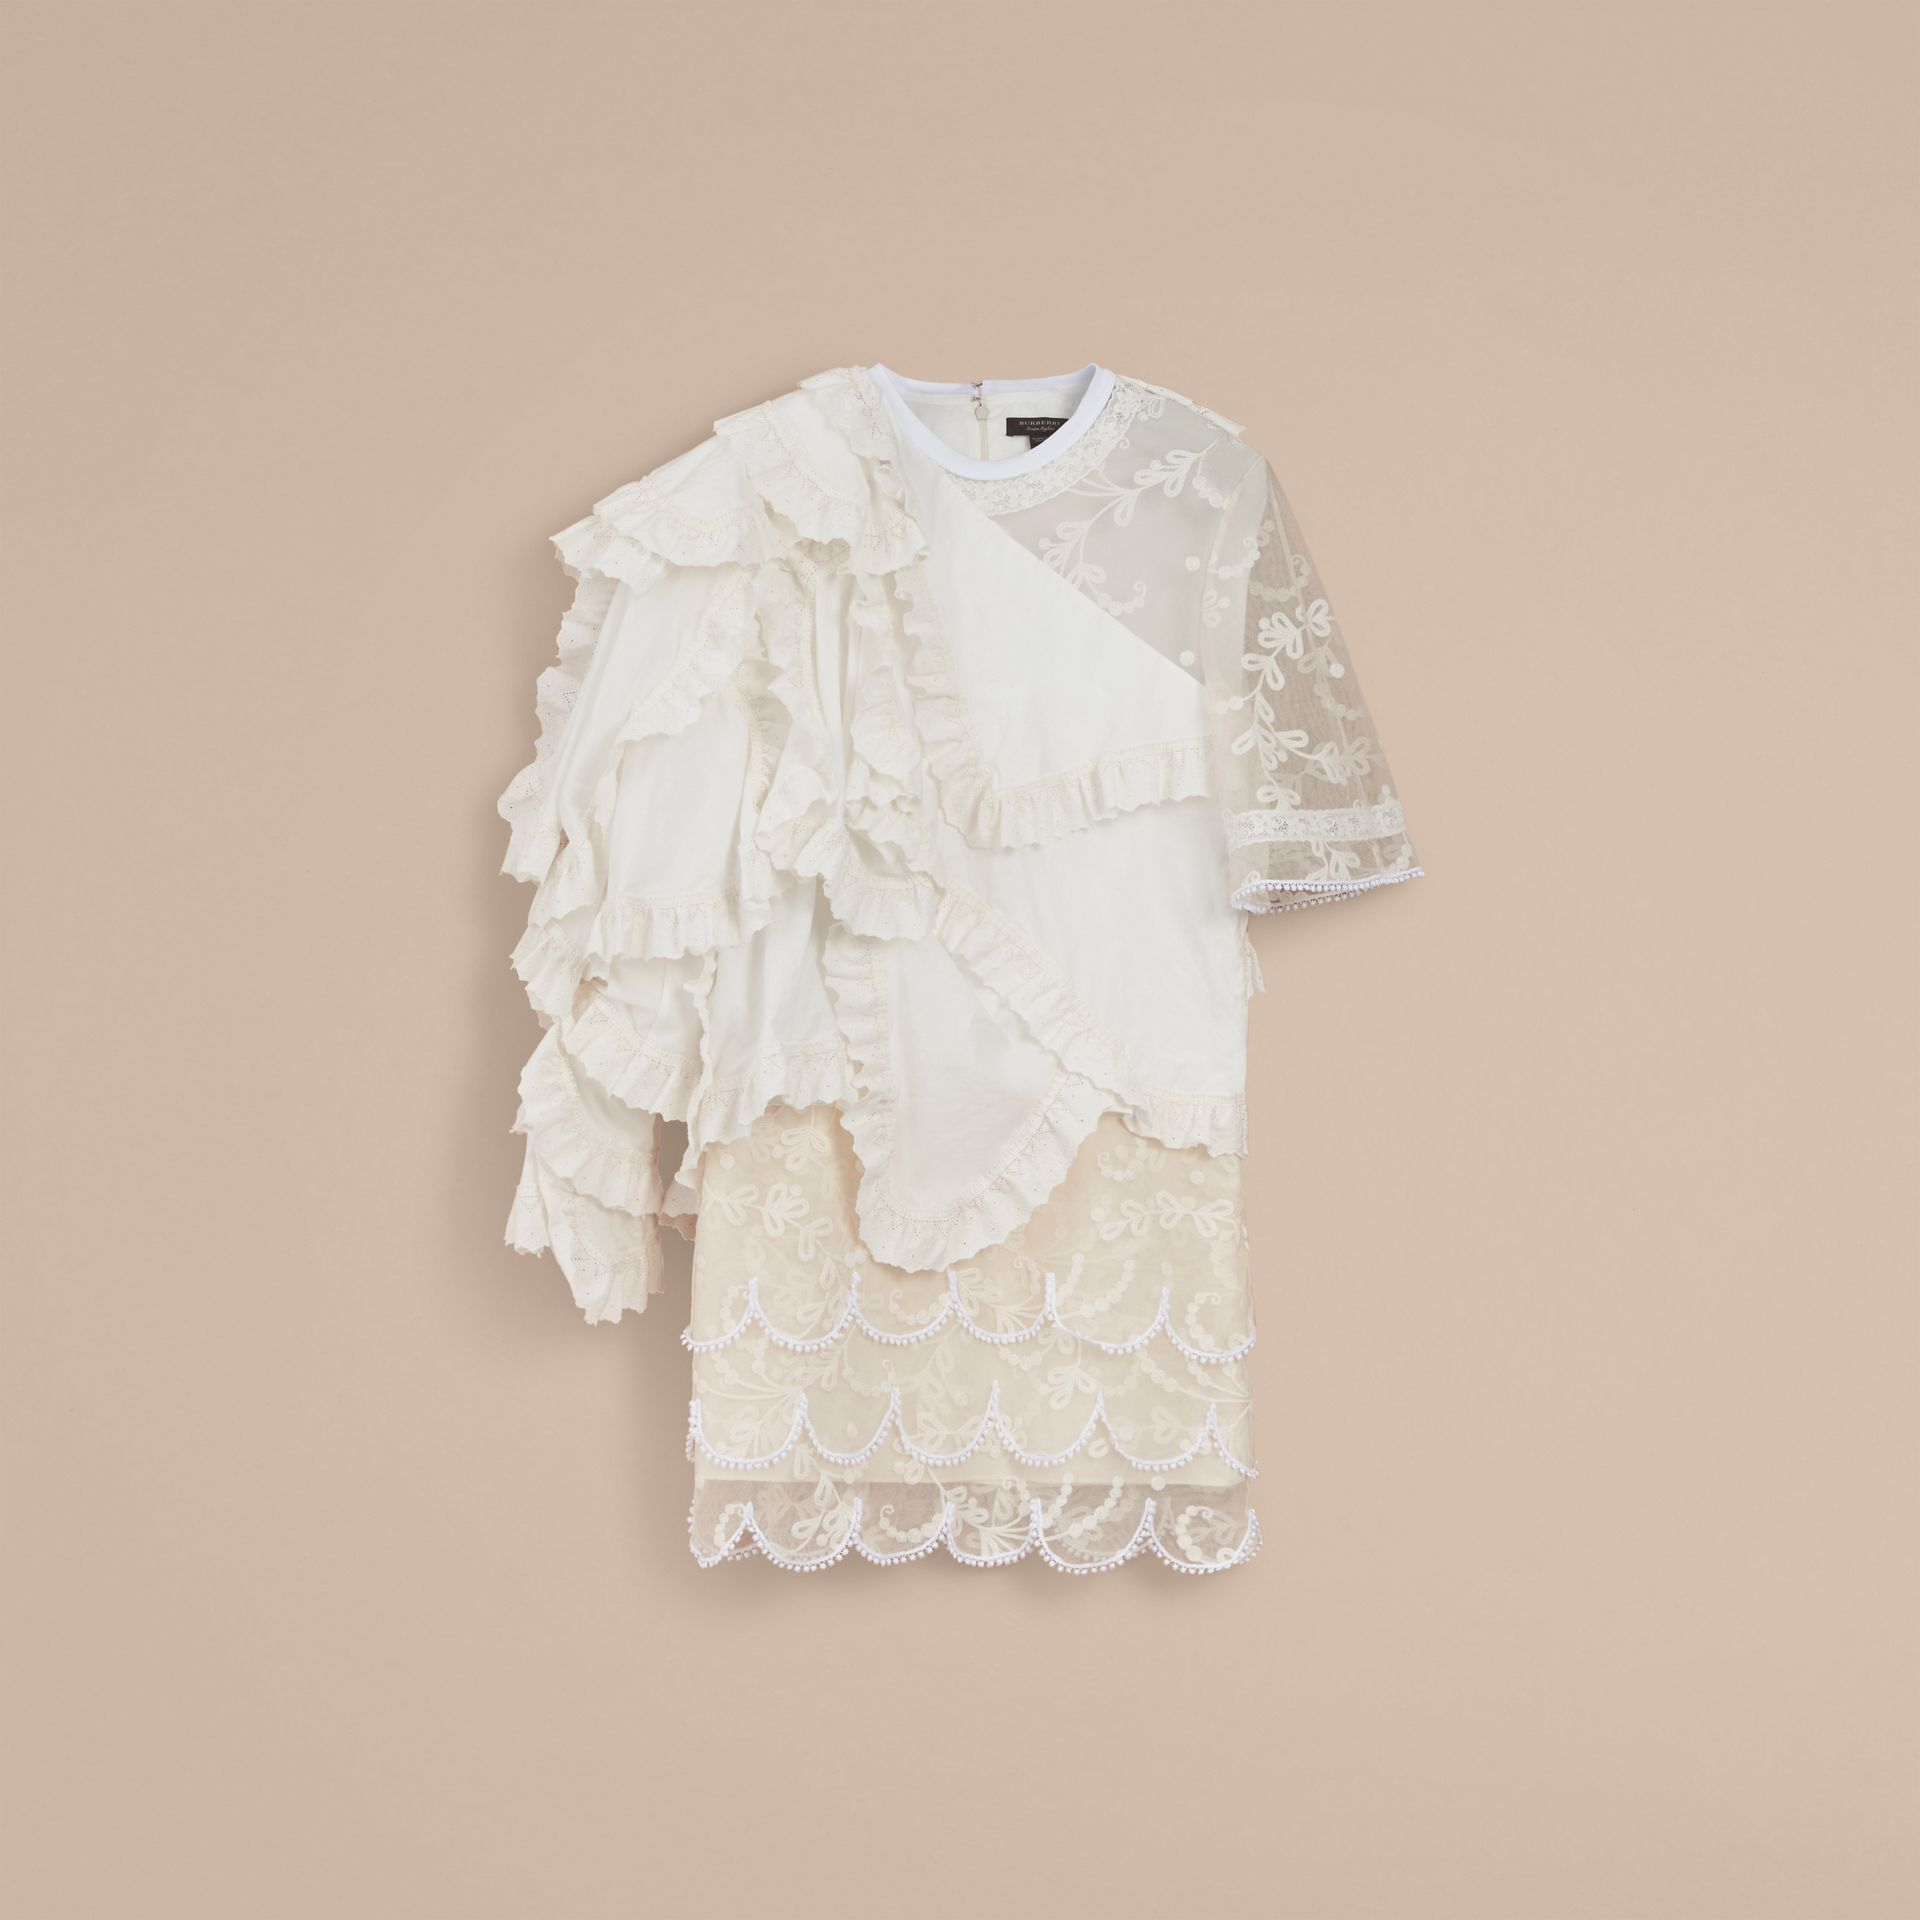 Broderie Anglaise Ruffle Cotton and Lace Dress - gallery image 4